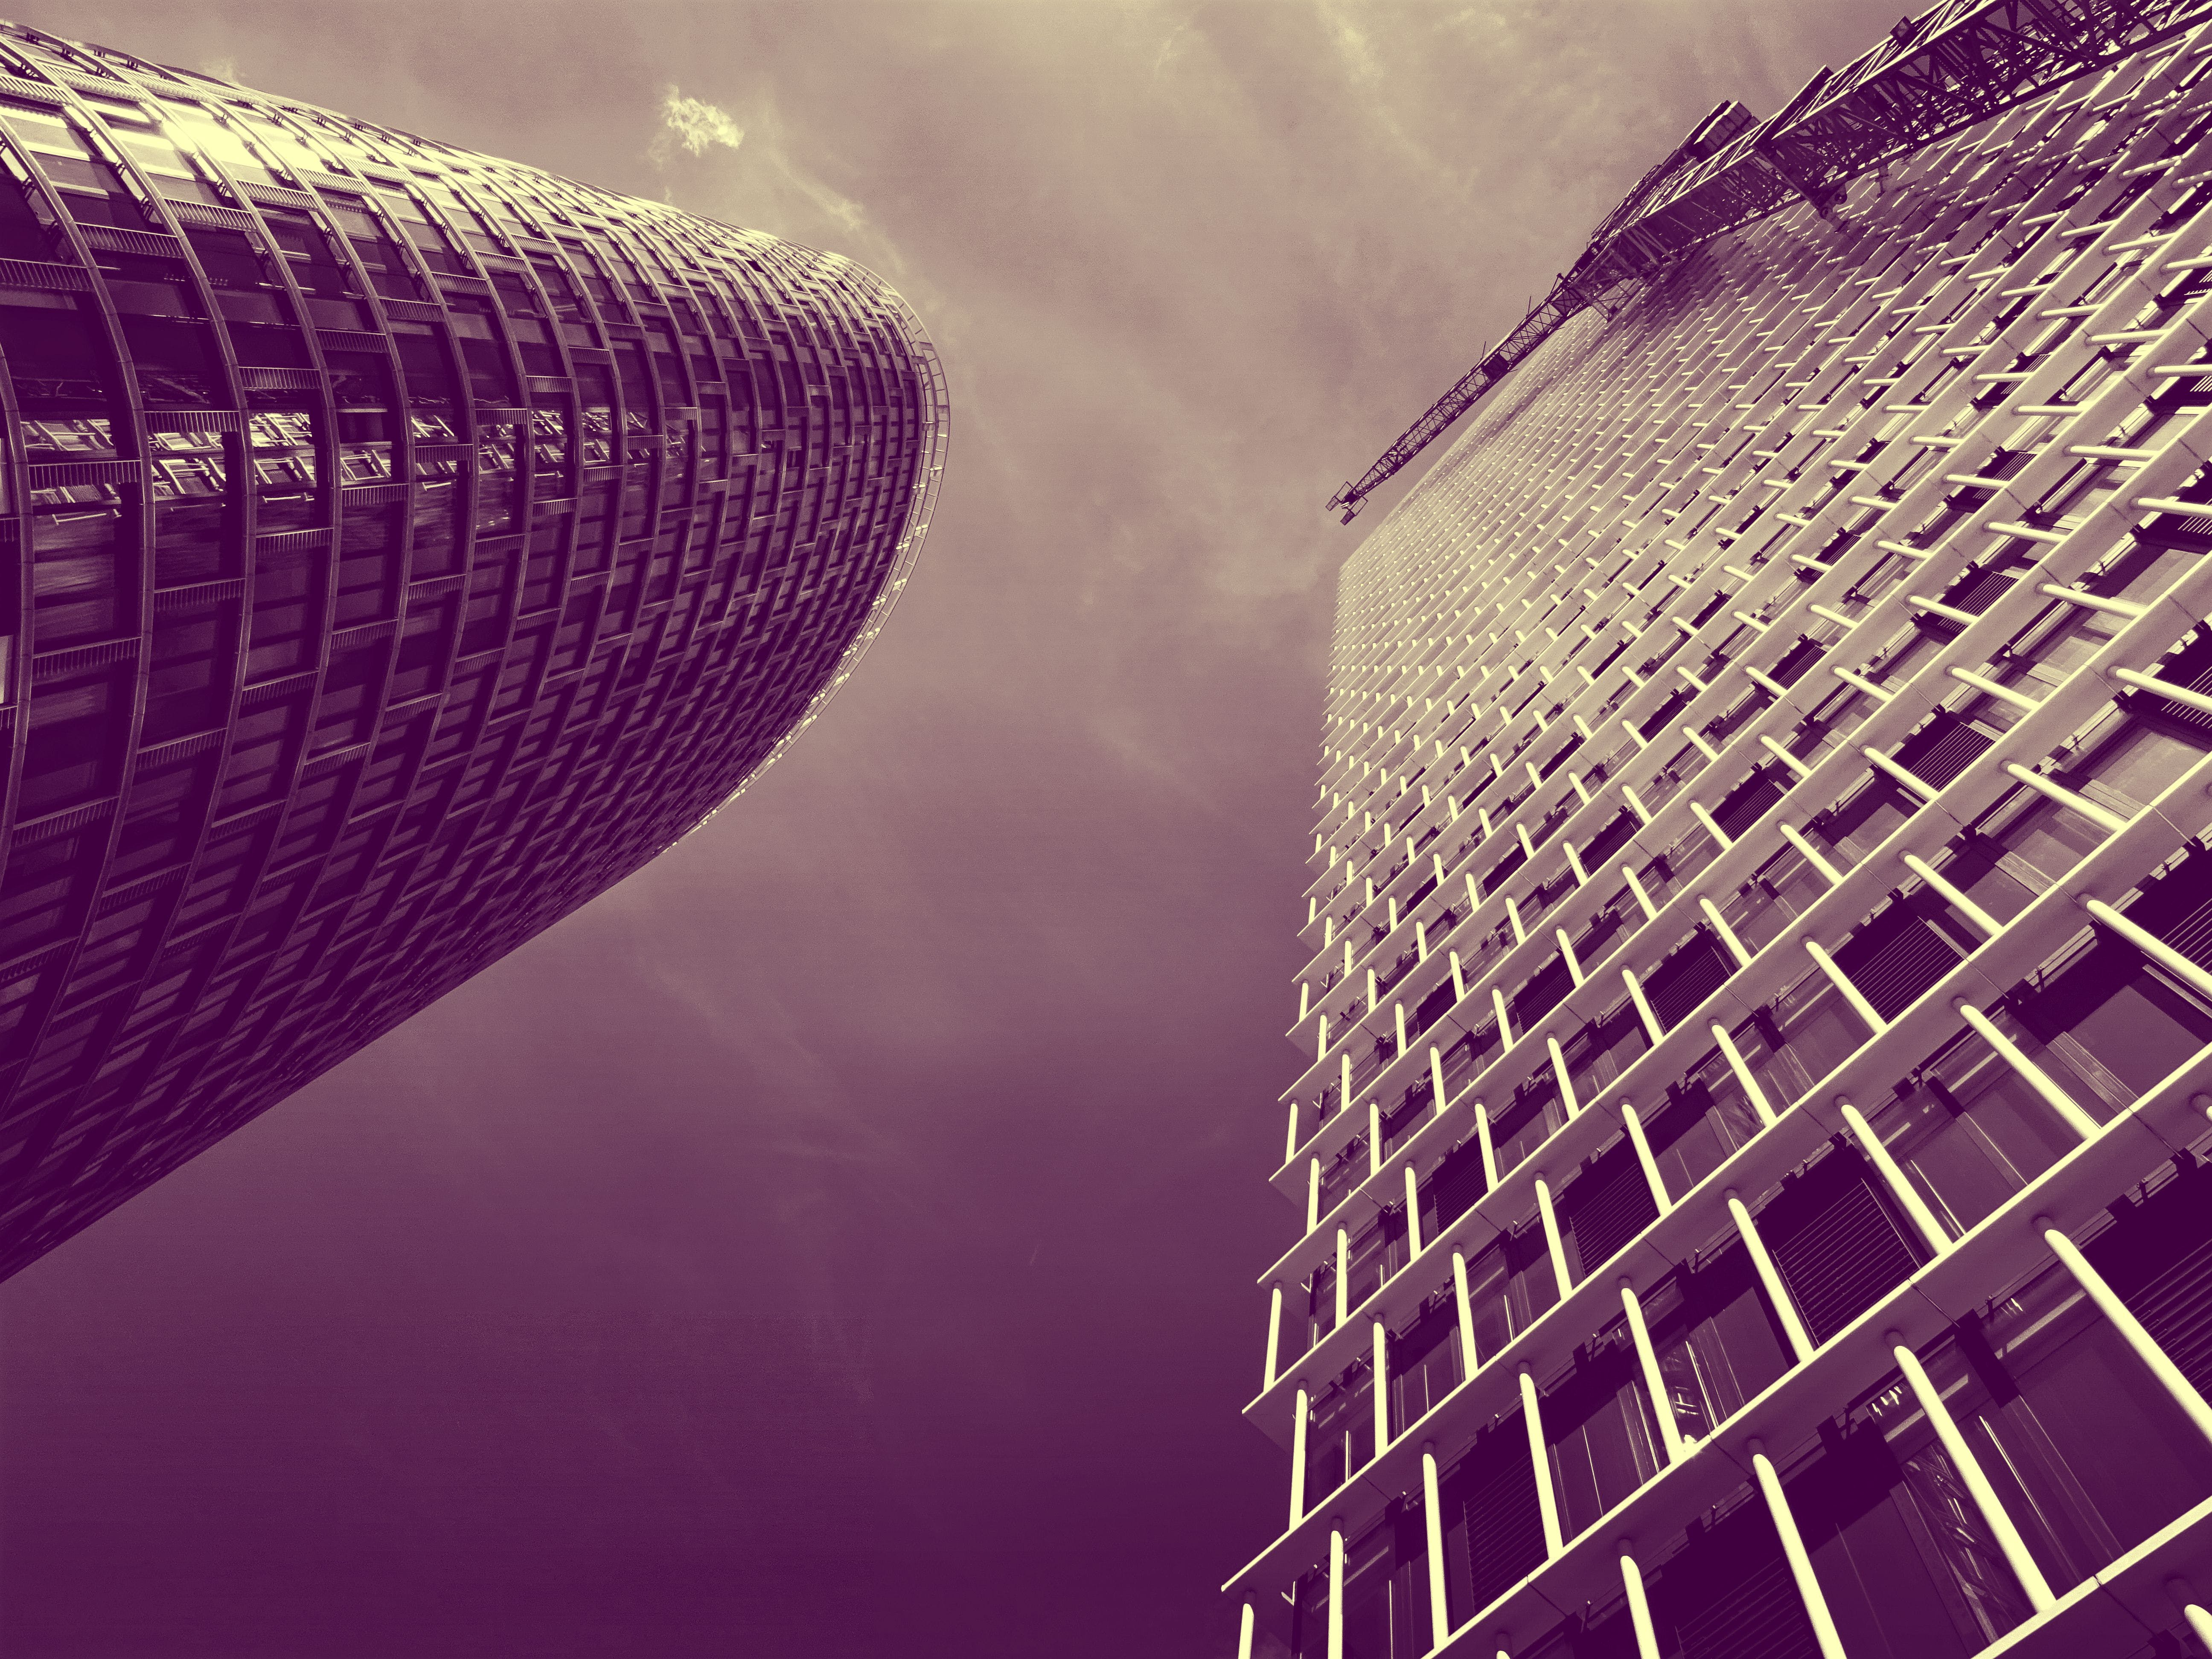 Free stock photo of sky, clouds, cloudy, buildings